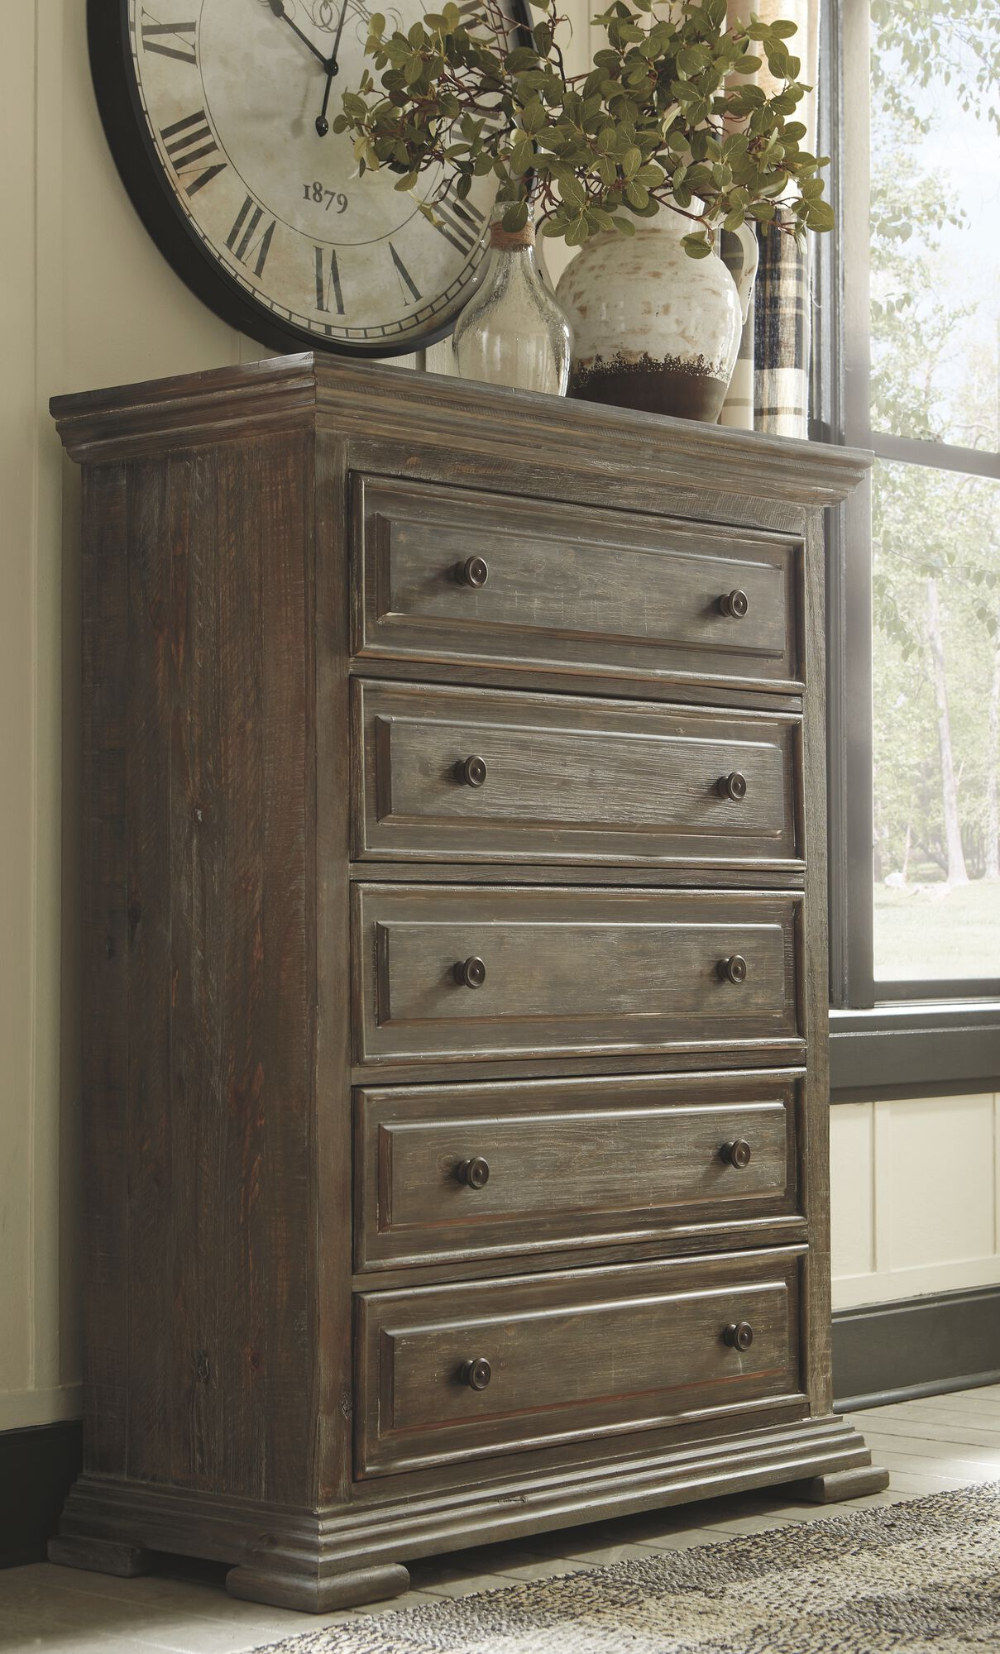 Traditional FiveDrawer Chest in Aged Pine Mathis